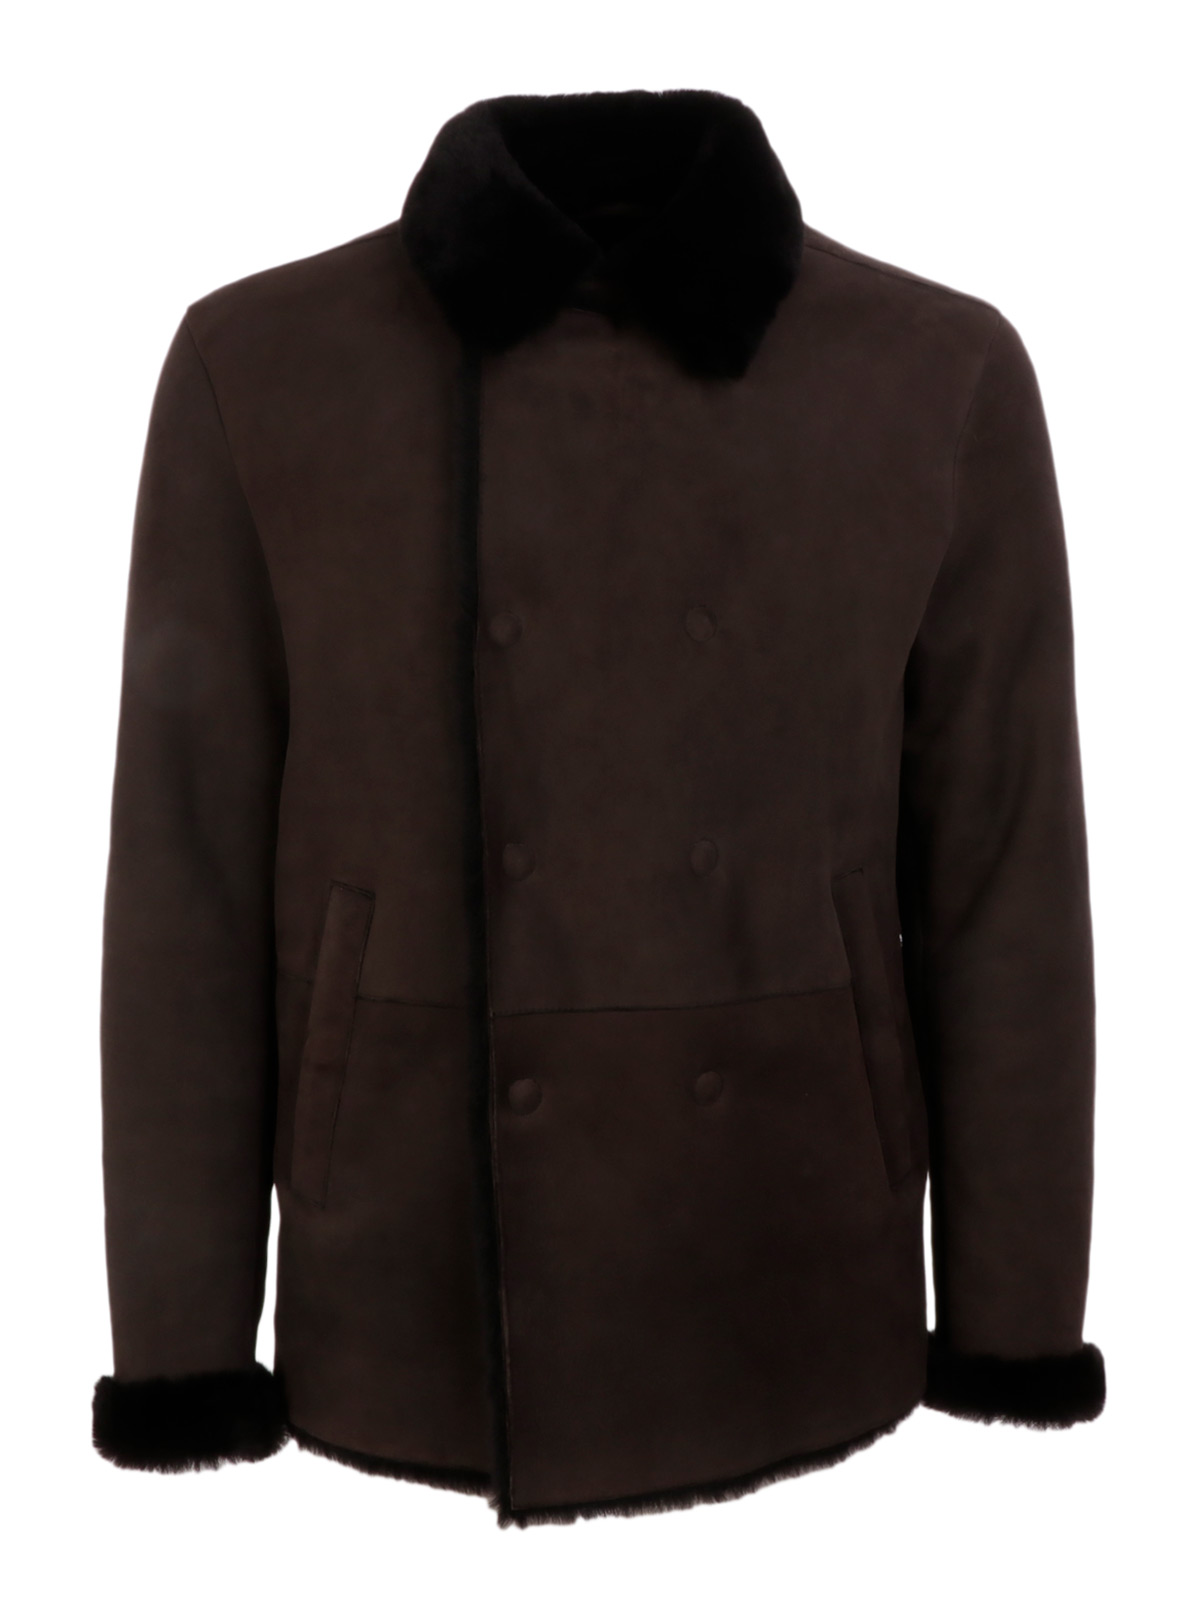 Picture of EMPORIO ARMANI | Men's Shearling Jacket